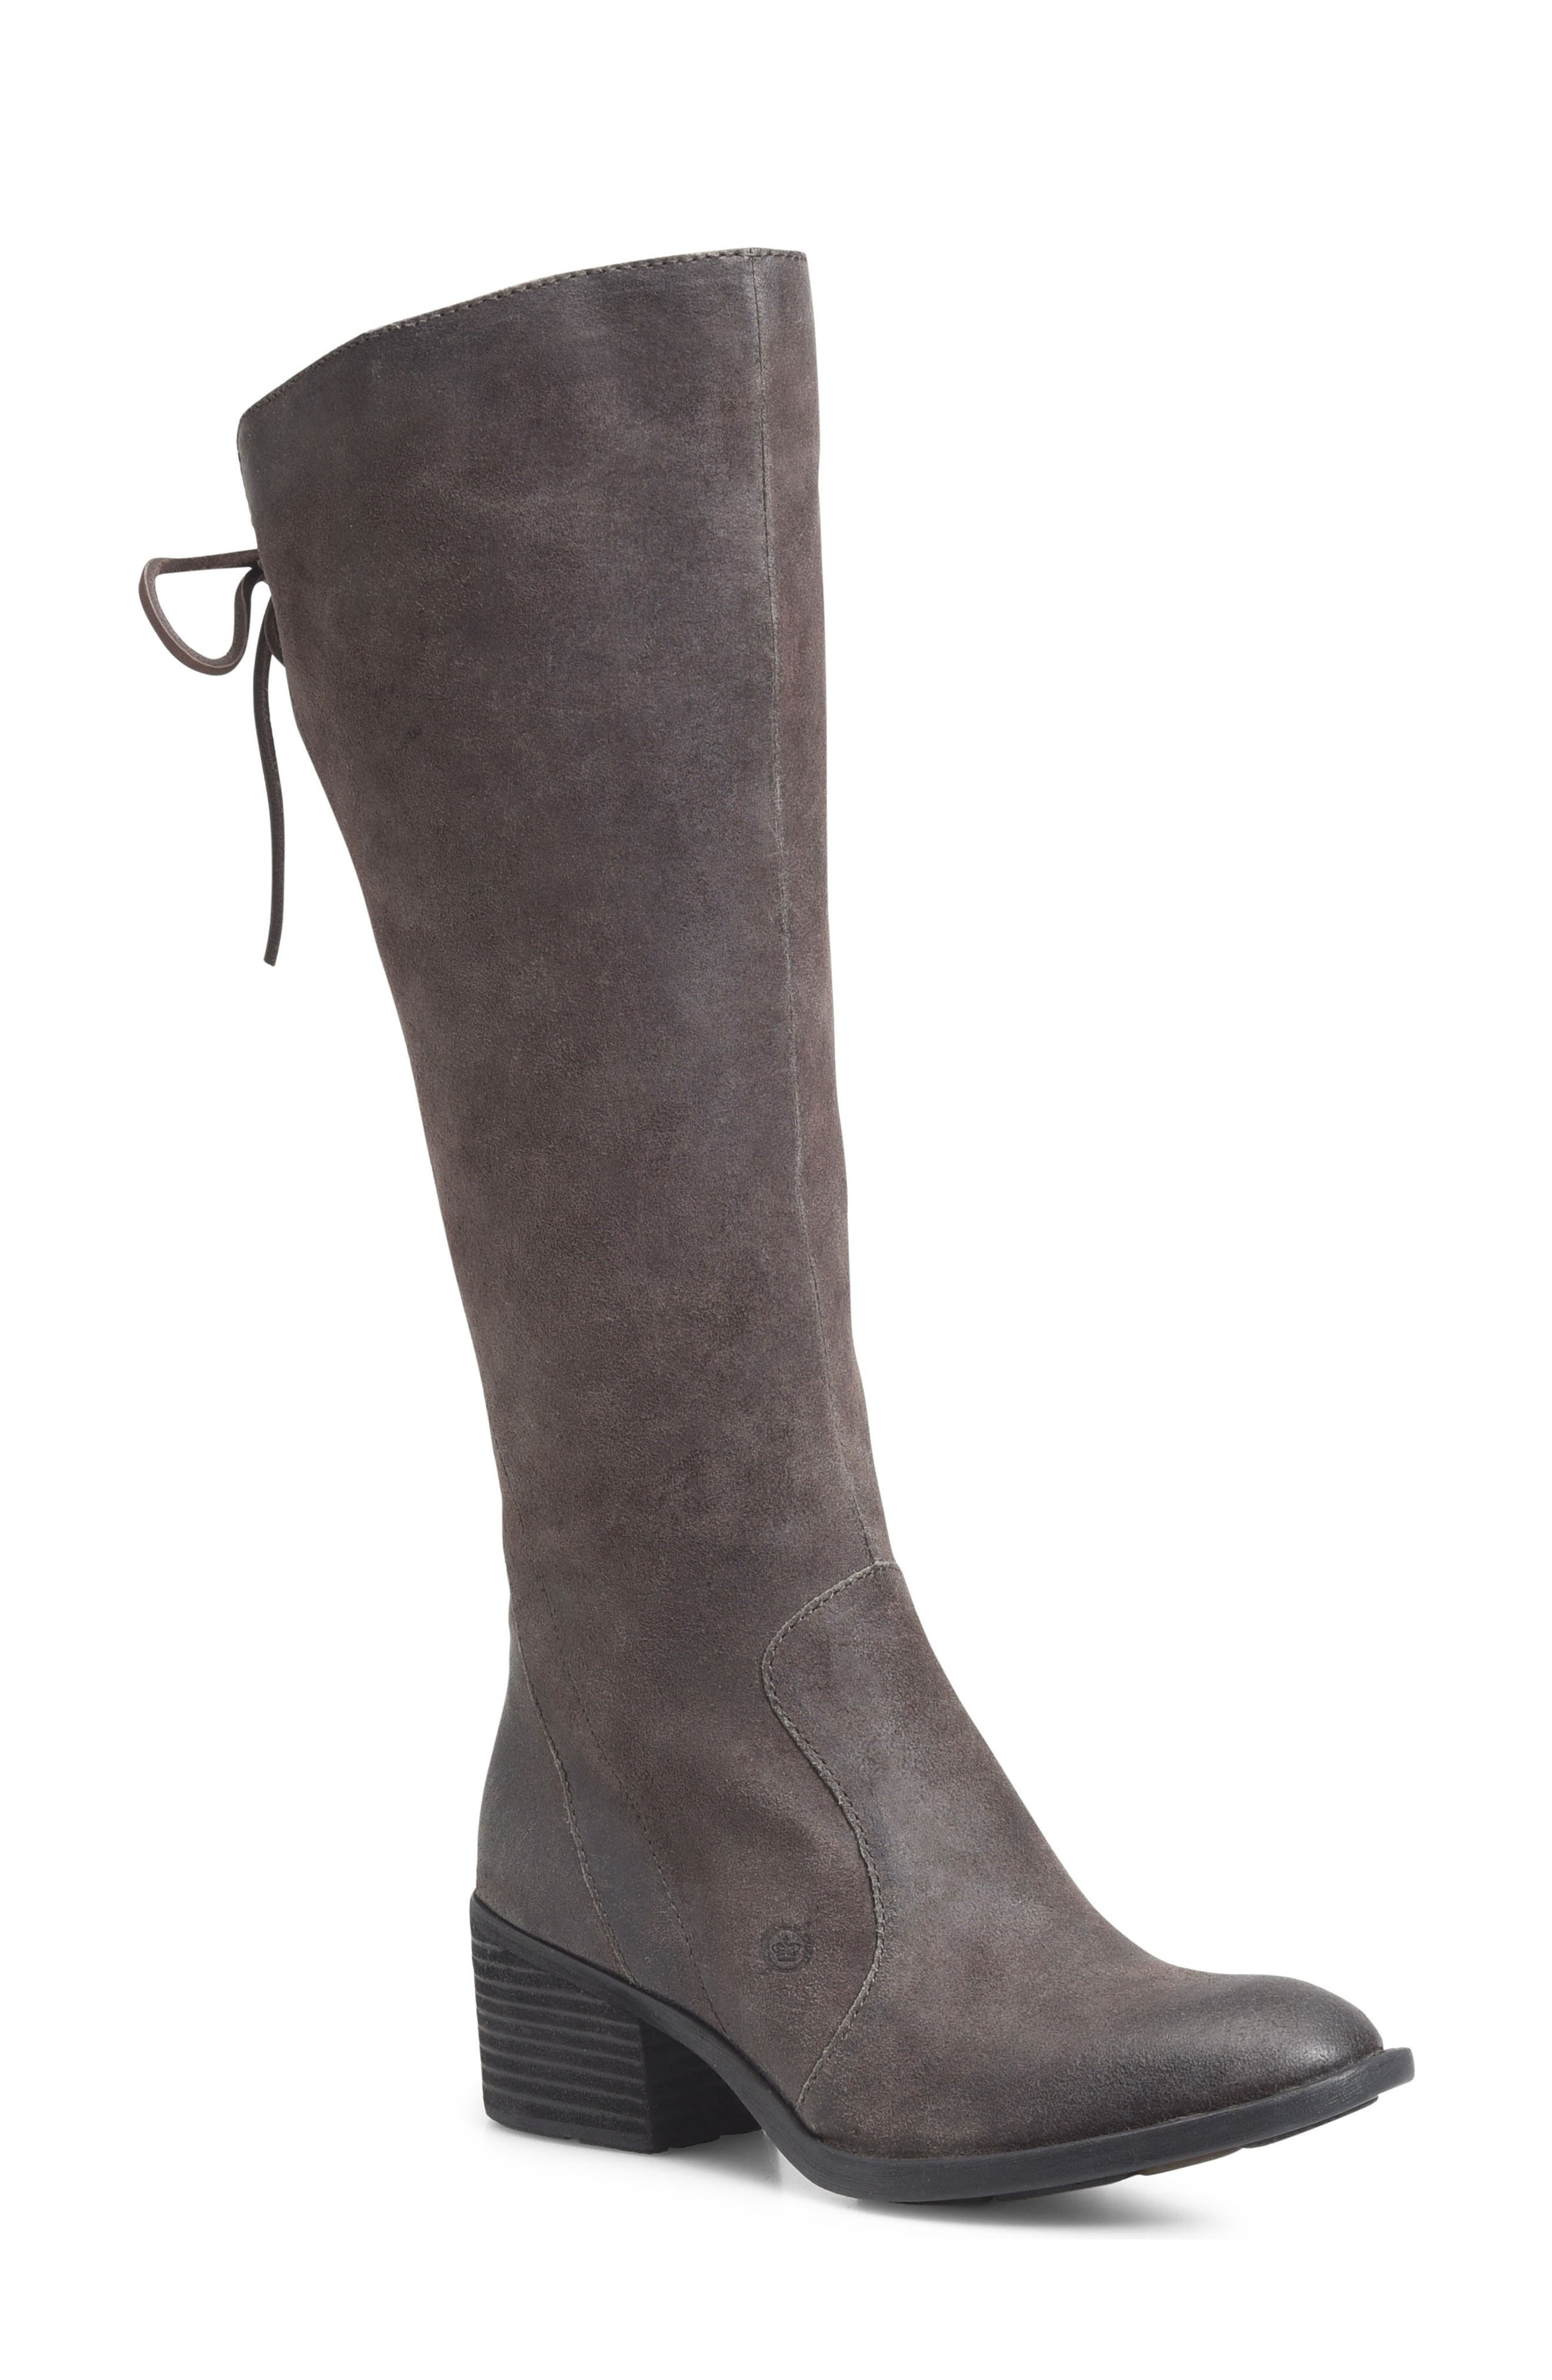 Felicia Knee High Boot,                             Main thumbnail 1, color,                             Grey Distressed Leather